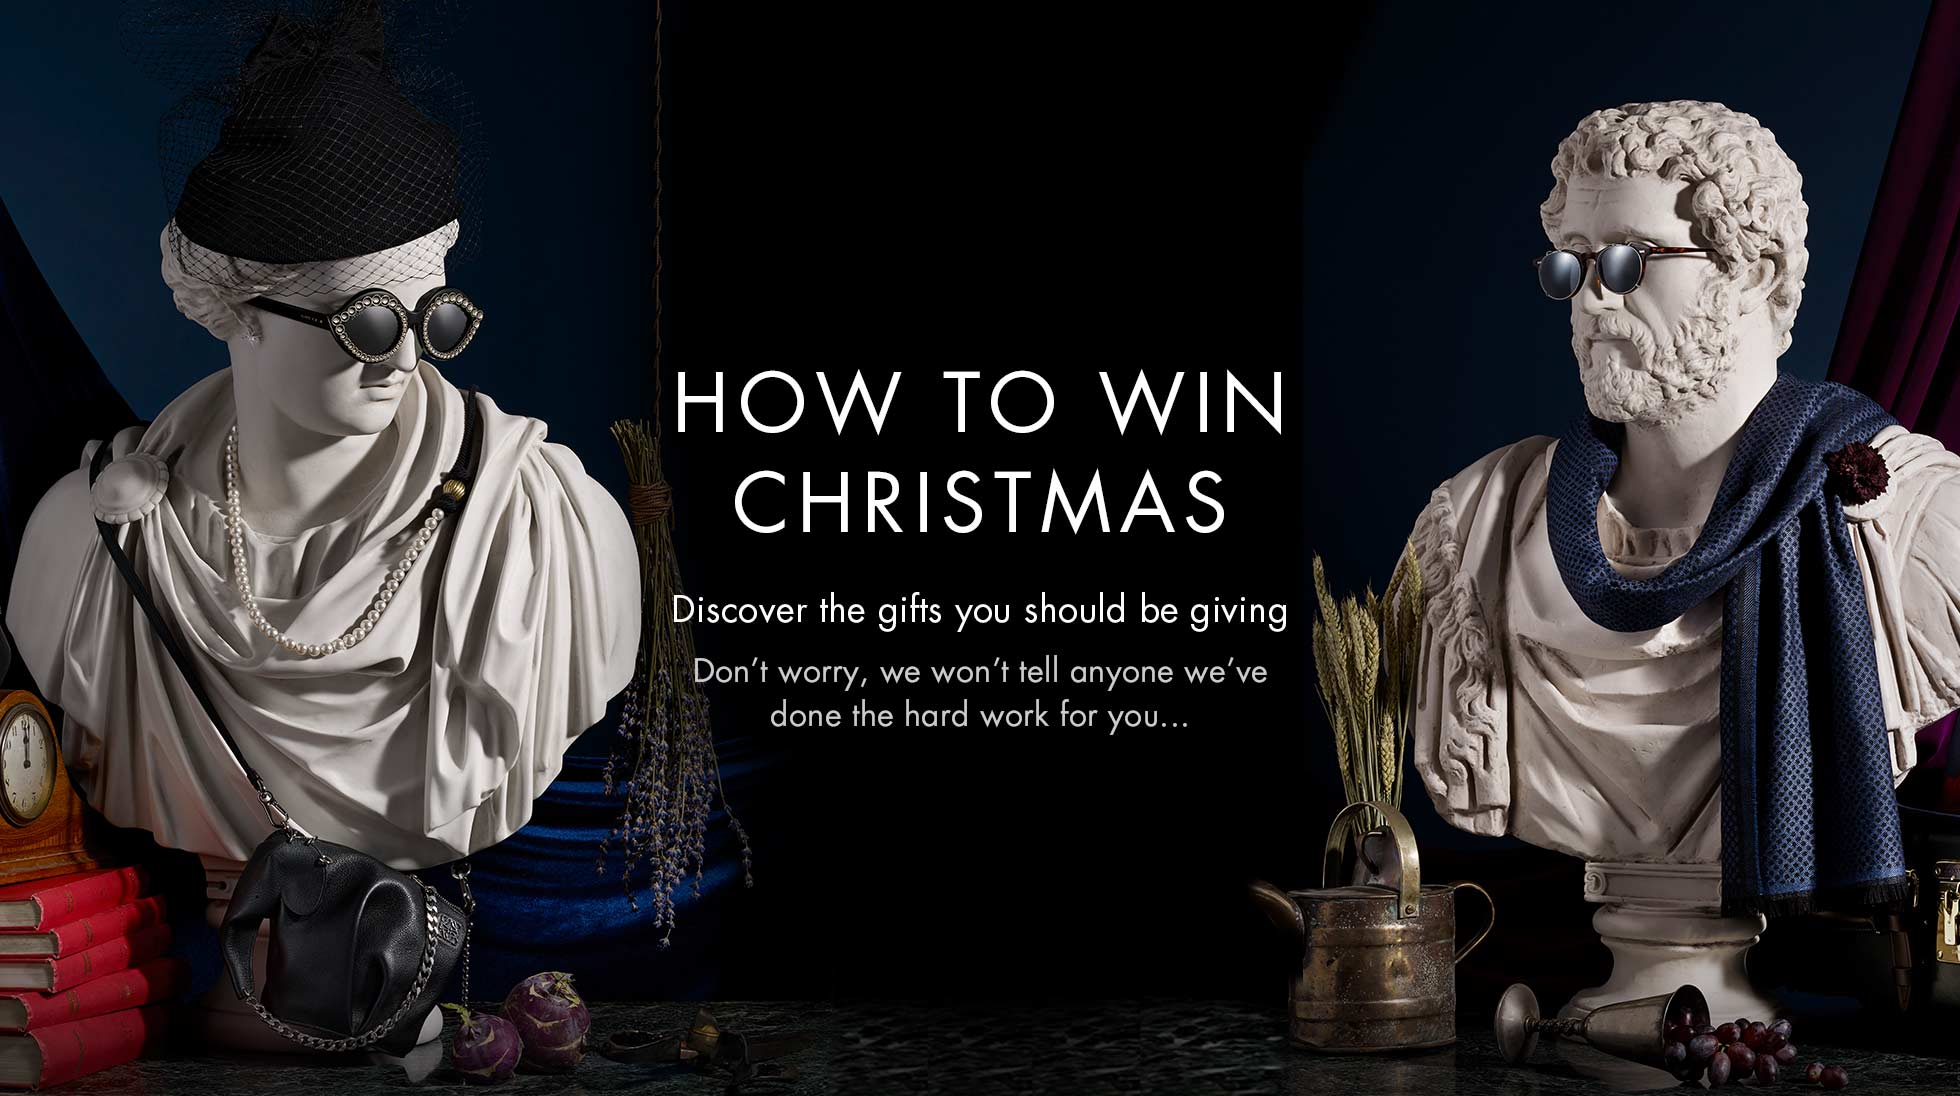 How To Win Christmas